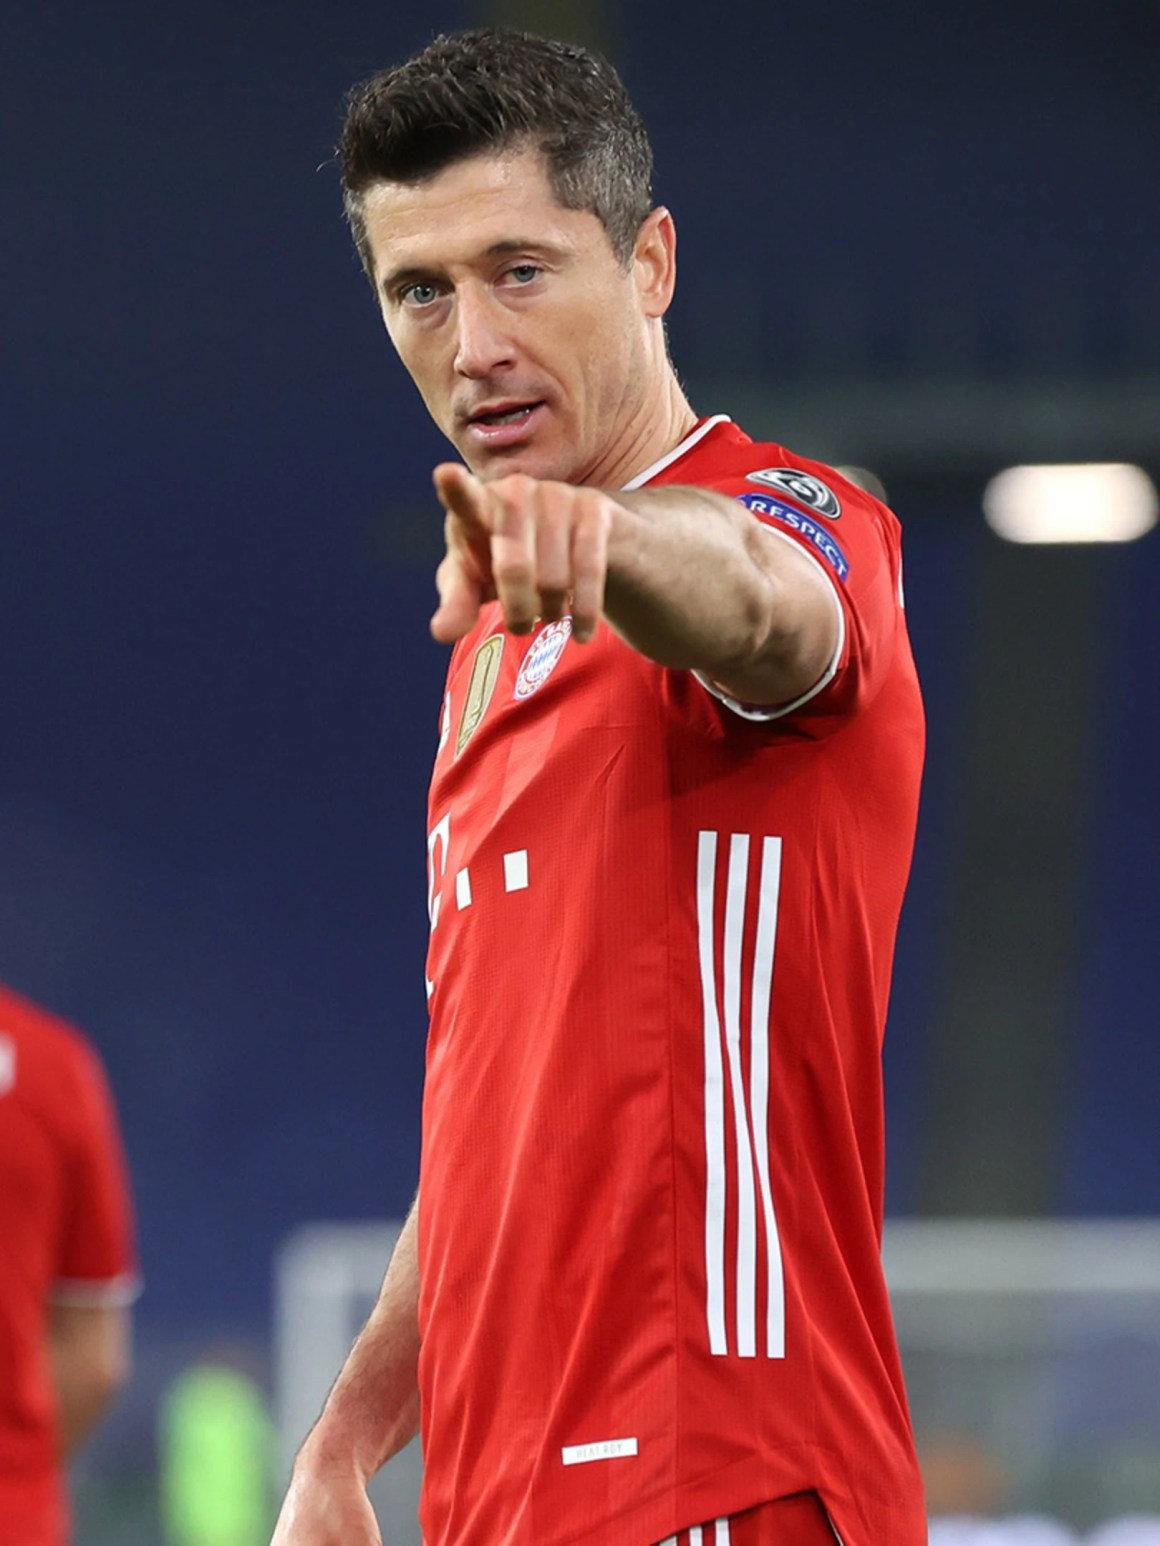 Lewandowski's eye for goal in Rome versus Lazio | FC Bayern